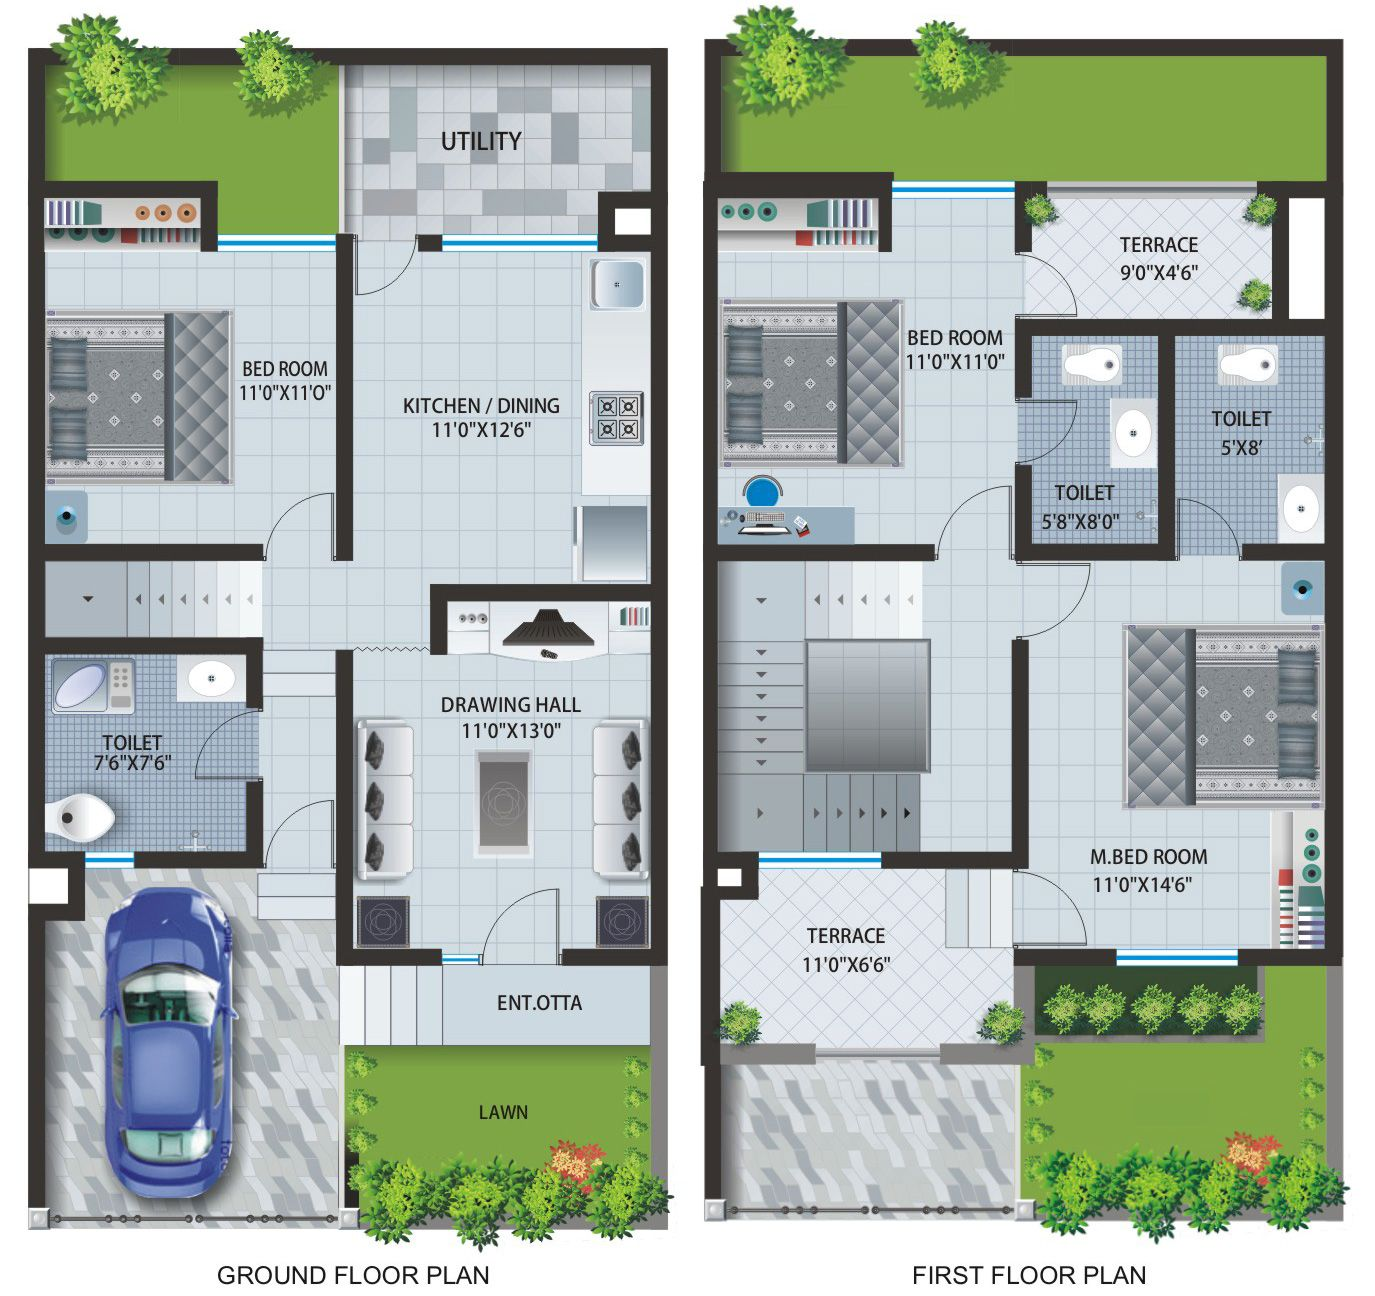 Floor plans of apartments row houses at caroline baner for Duplex layout plan